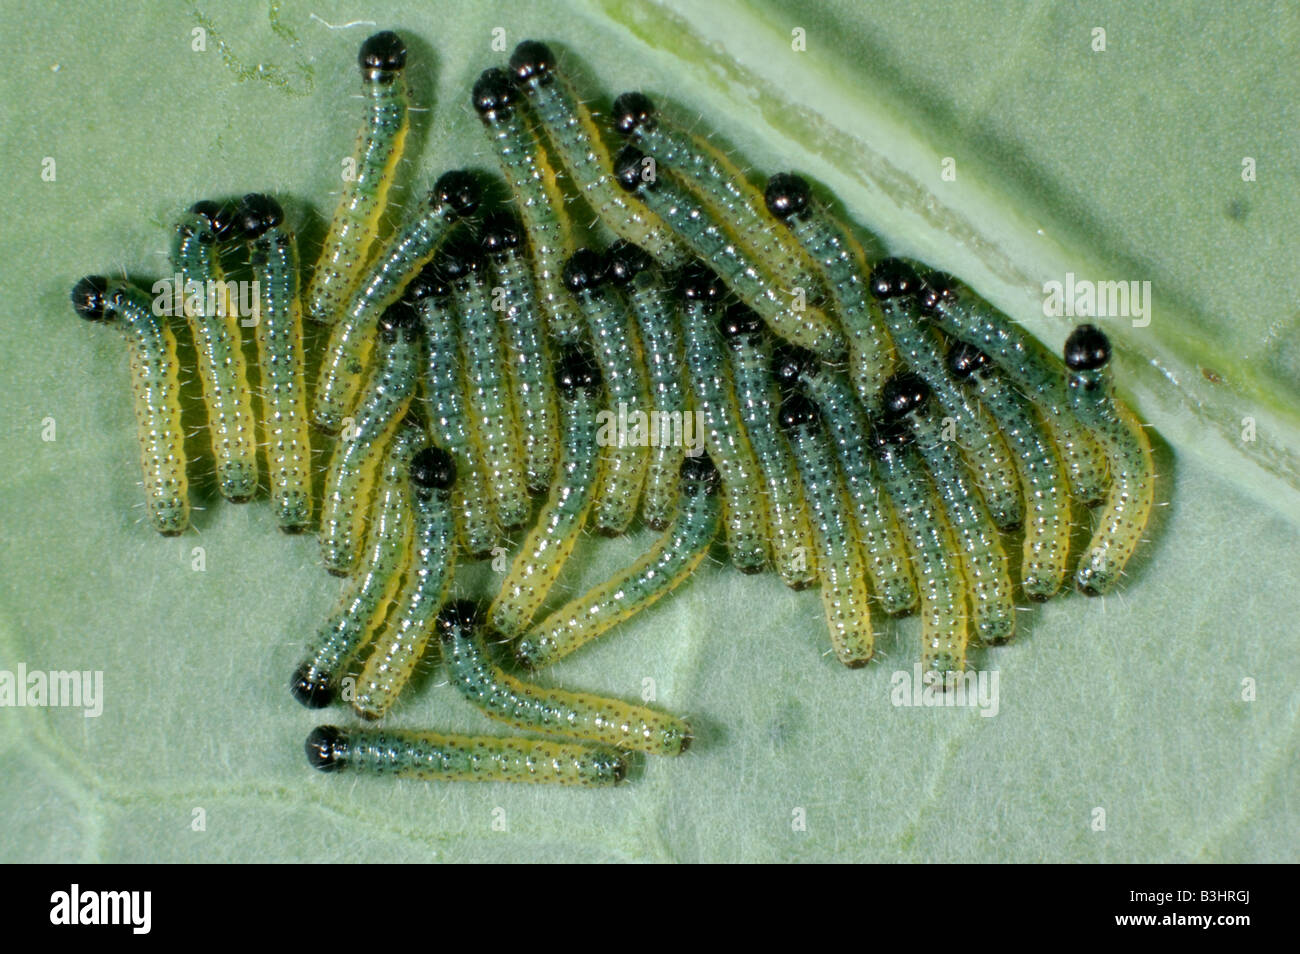 Early instar caterpillars of a large white butterfly Pieris brassicae on a cabbage leaf - Stock Image